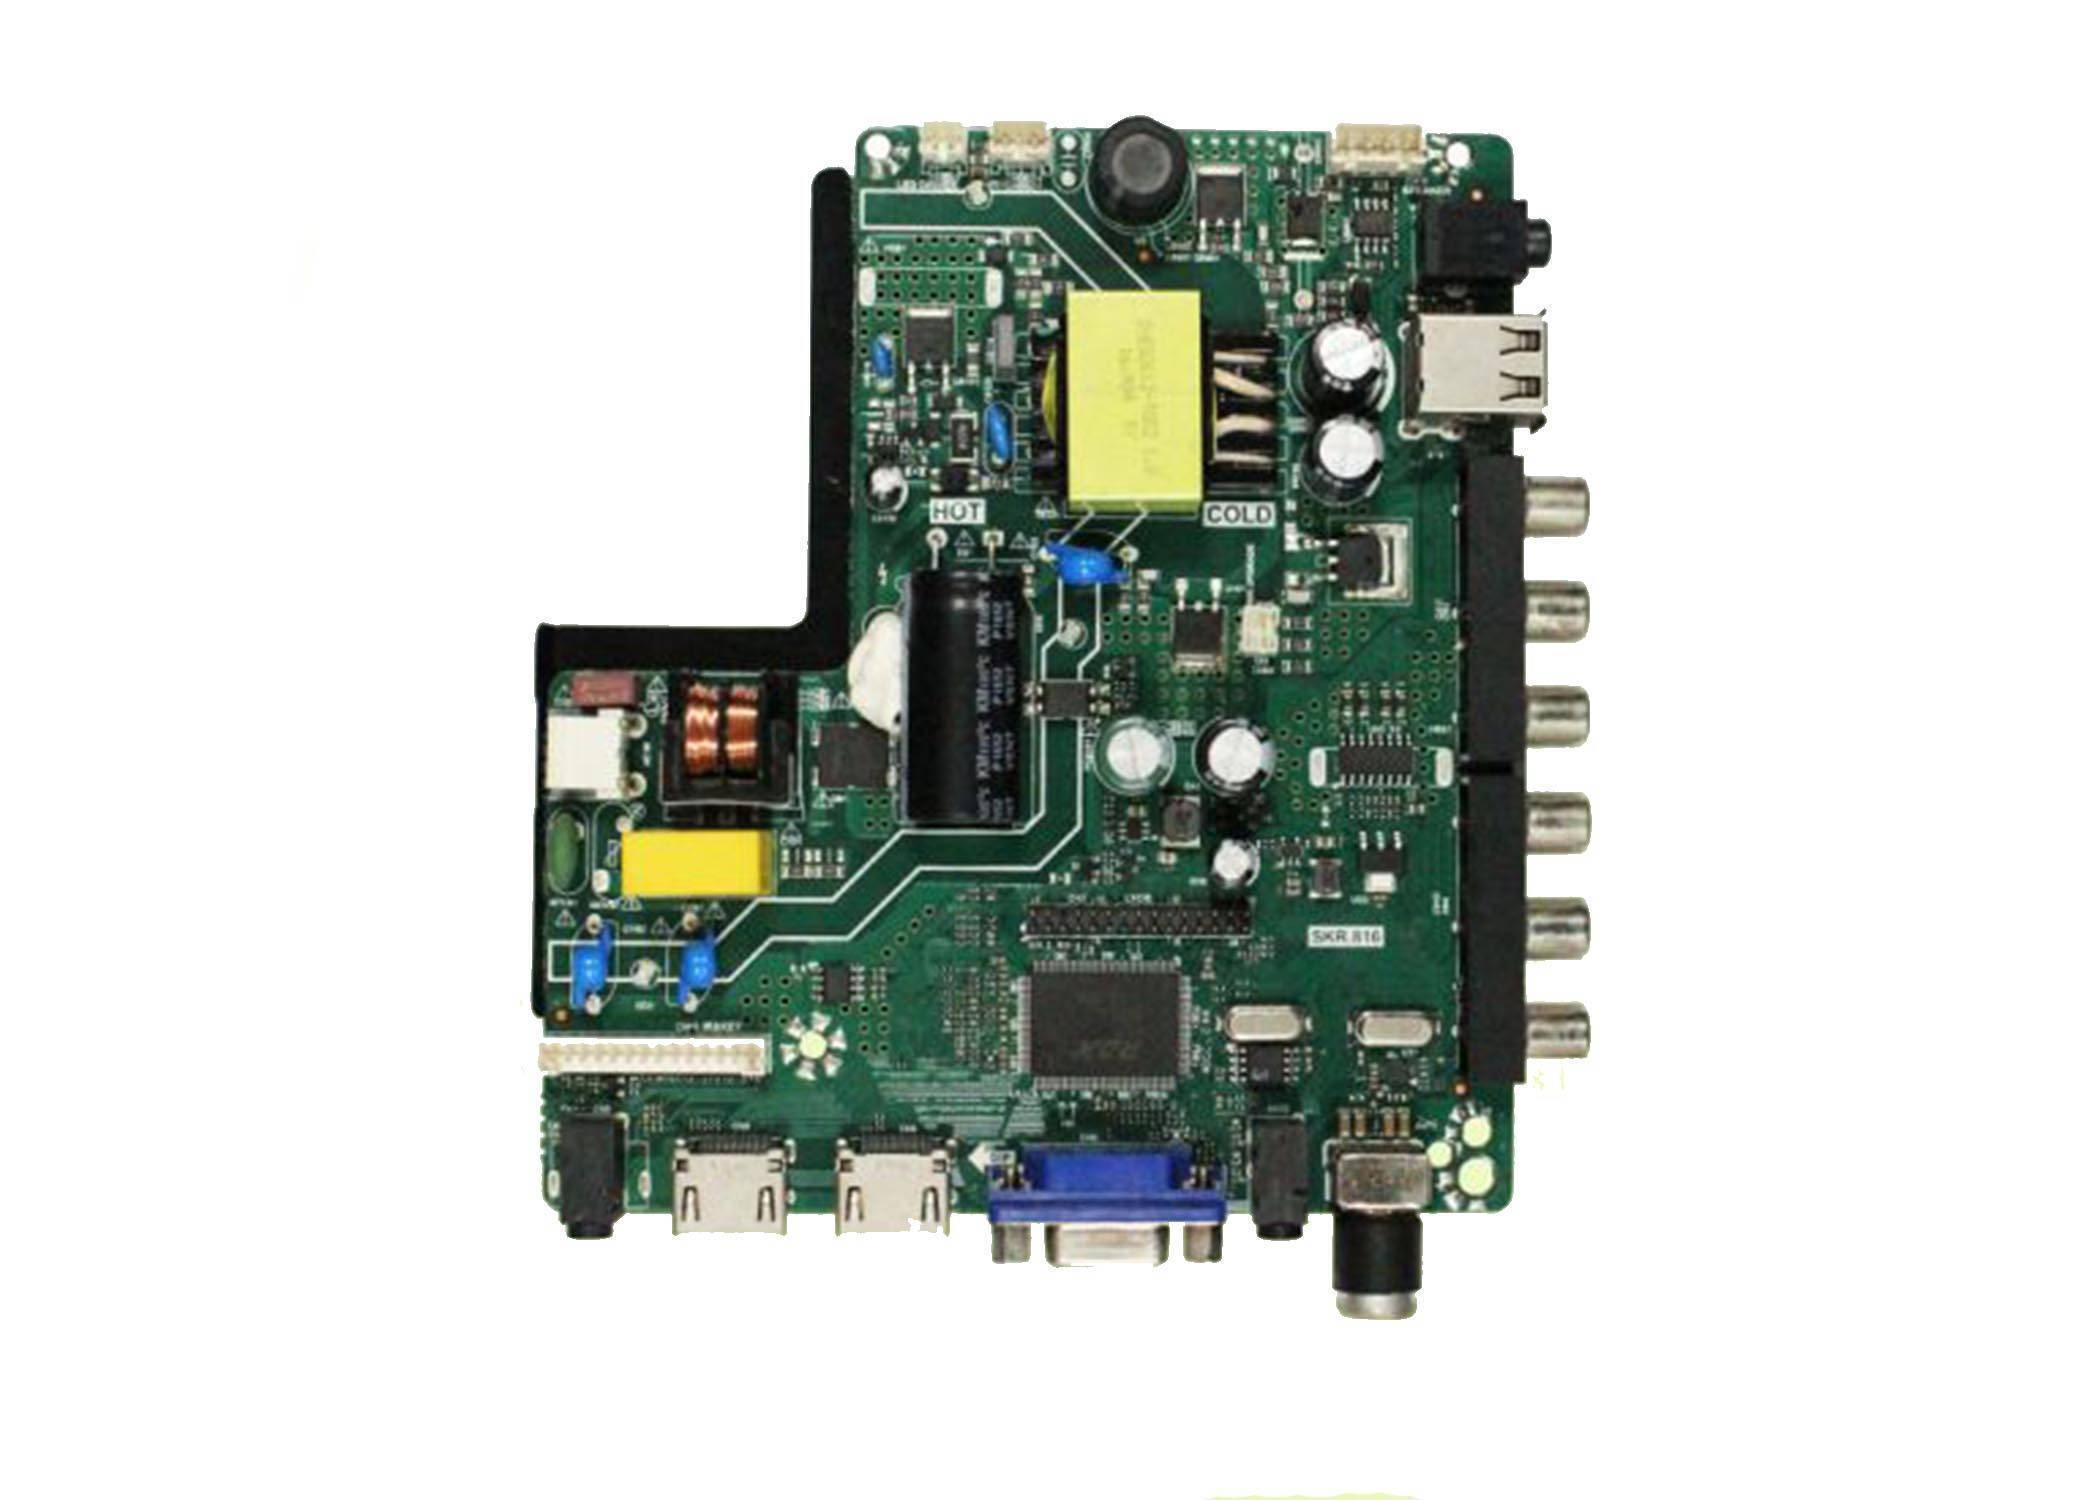 28 to 32inch FHD LCD / LED TV Main Board (ZYCF-T. R83.816)